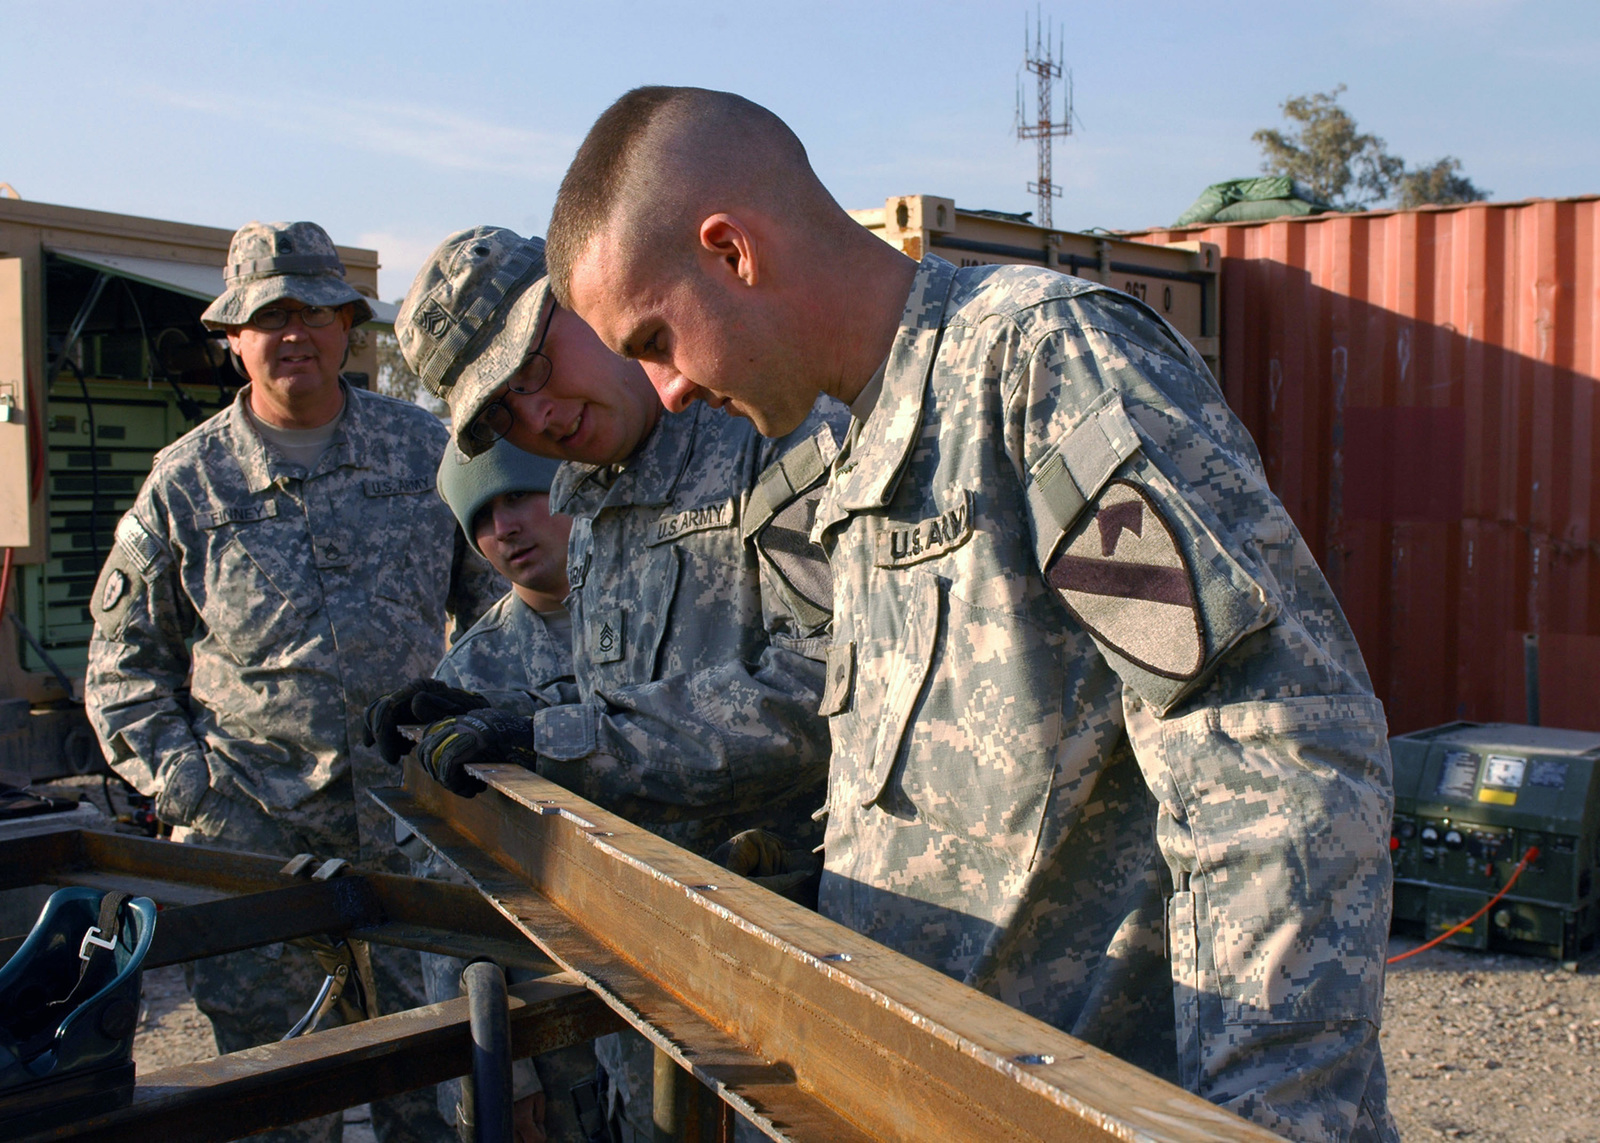 U.S. Army SPC. Kyle Thomas, SPC. Gary Parks, PFC. Paxton White and STAFF SGT. David W Finney, (front to back) are assigned to Echo Company, 27th Base Support Battalion, 1ST Cavalry Division, scrutinize a metal bracket at the motor pool. The Fort Bliss, Texas, fabricators engineered the metal bracket to secure the rocket-propelled grenade deflection cage usually attached to the M113 Armored Personnel Carrier and redesigned it to mount on an engineer route clearance vehicle for added force protection for forces in the Mosul. (U.S. Army PHOTO by STAFF SGT. Samantha M. Stryker) (Released)